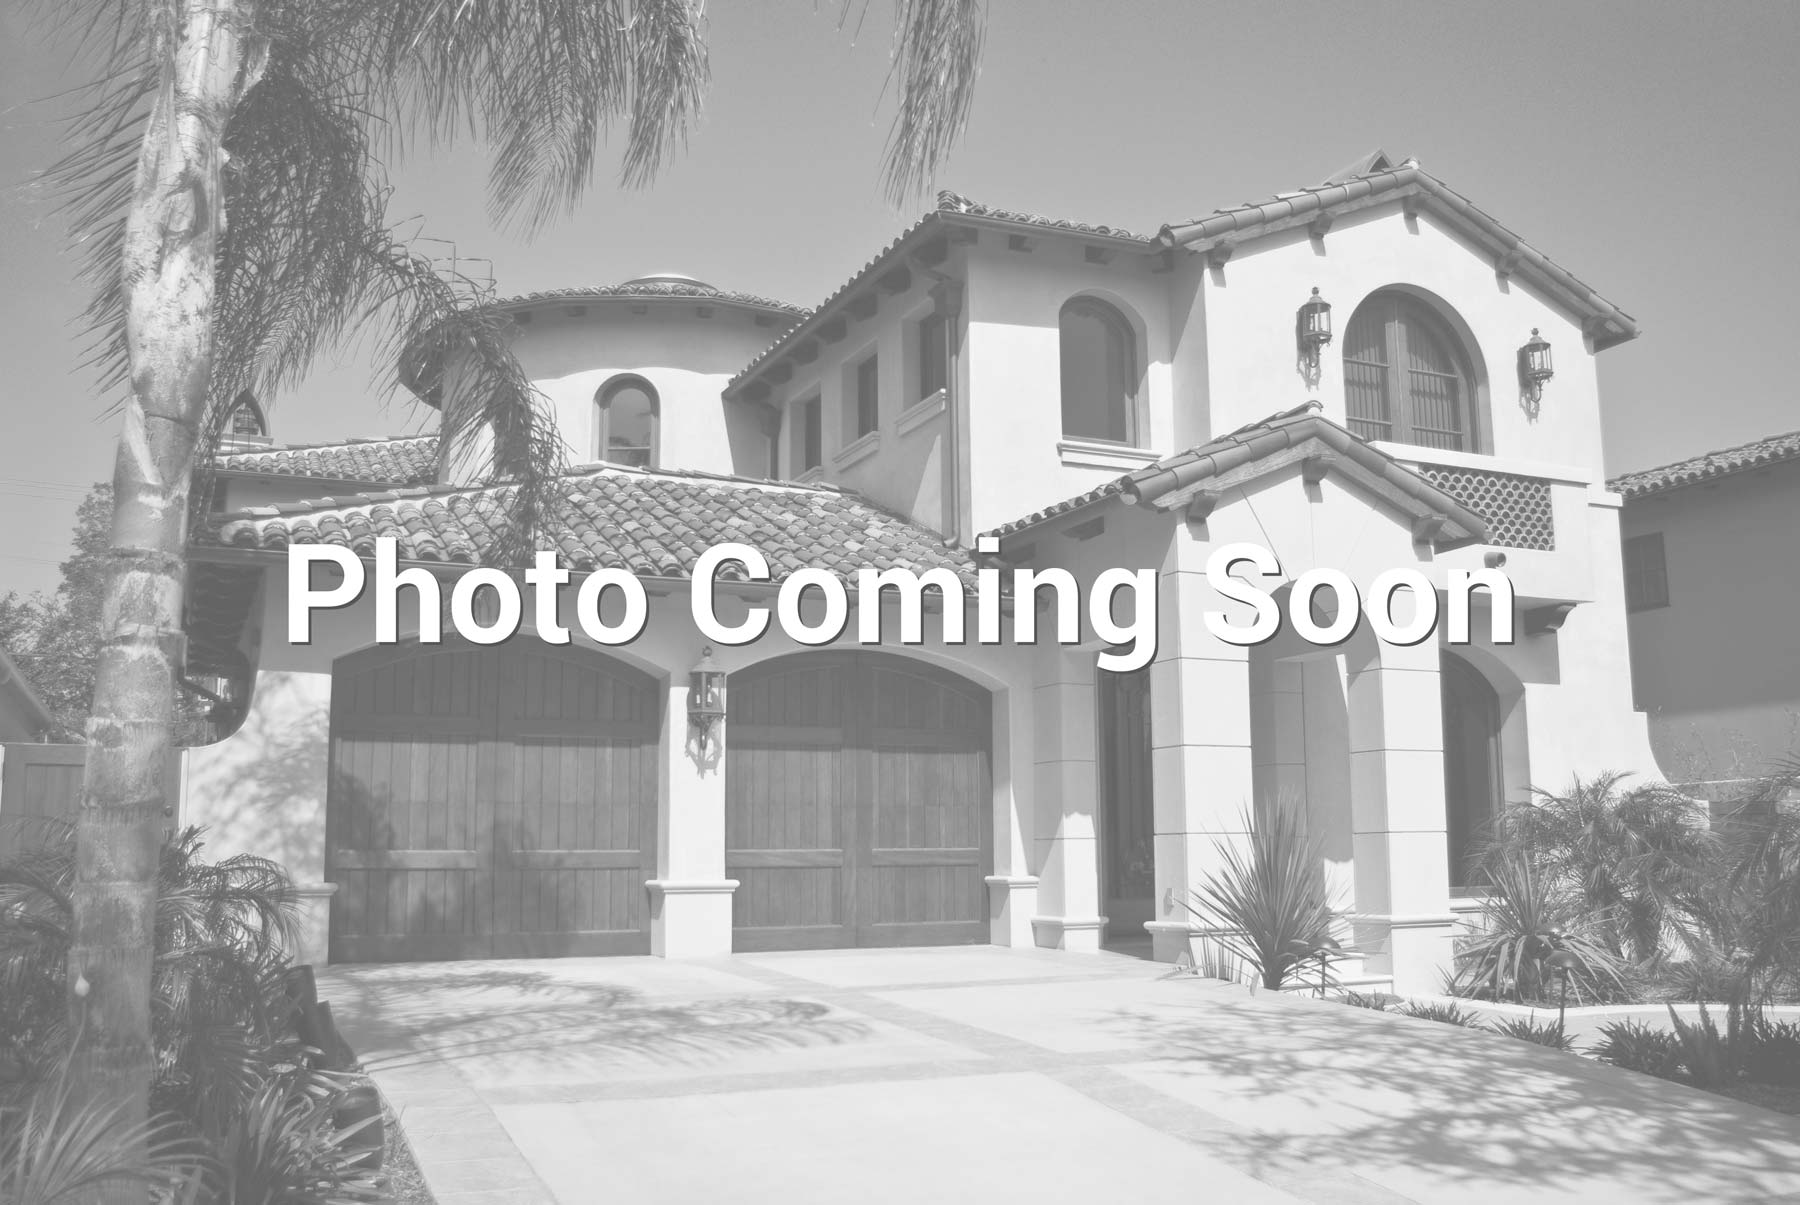 $50,000 - 3Br/2Ba -  for Sale in Stockton